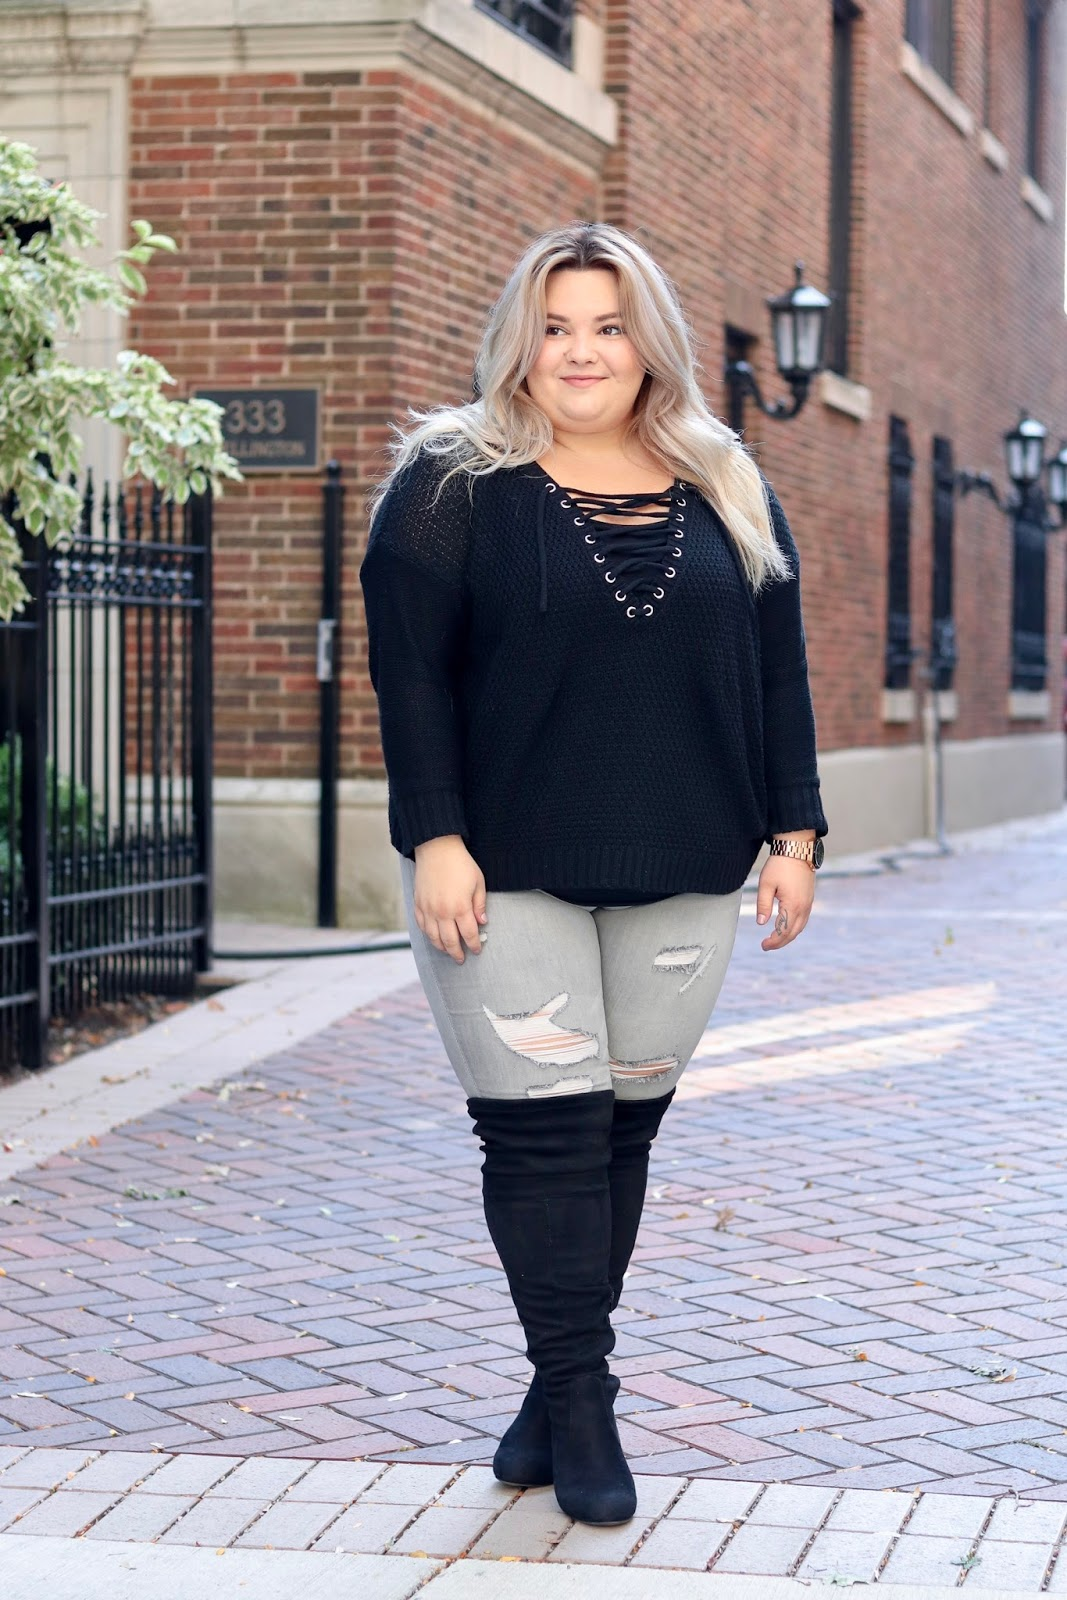 plus size wide calf over the knee boots, over-the-knee boots, wide calf boots, wide calf, cheap wide calf boots, over the knee boots, wide fit, Natalie in the city, Natalie Craig, Chicago fashion blogger, plus size Chicago fashion blogger, midwest fashion blogger, curves and confidence, Charlotte Russe, plus size fashion, fatshion, affordable plus size clothes